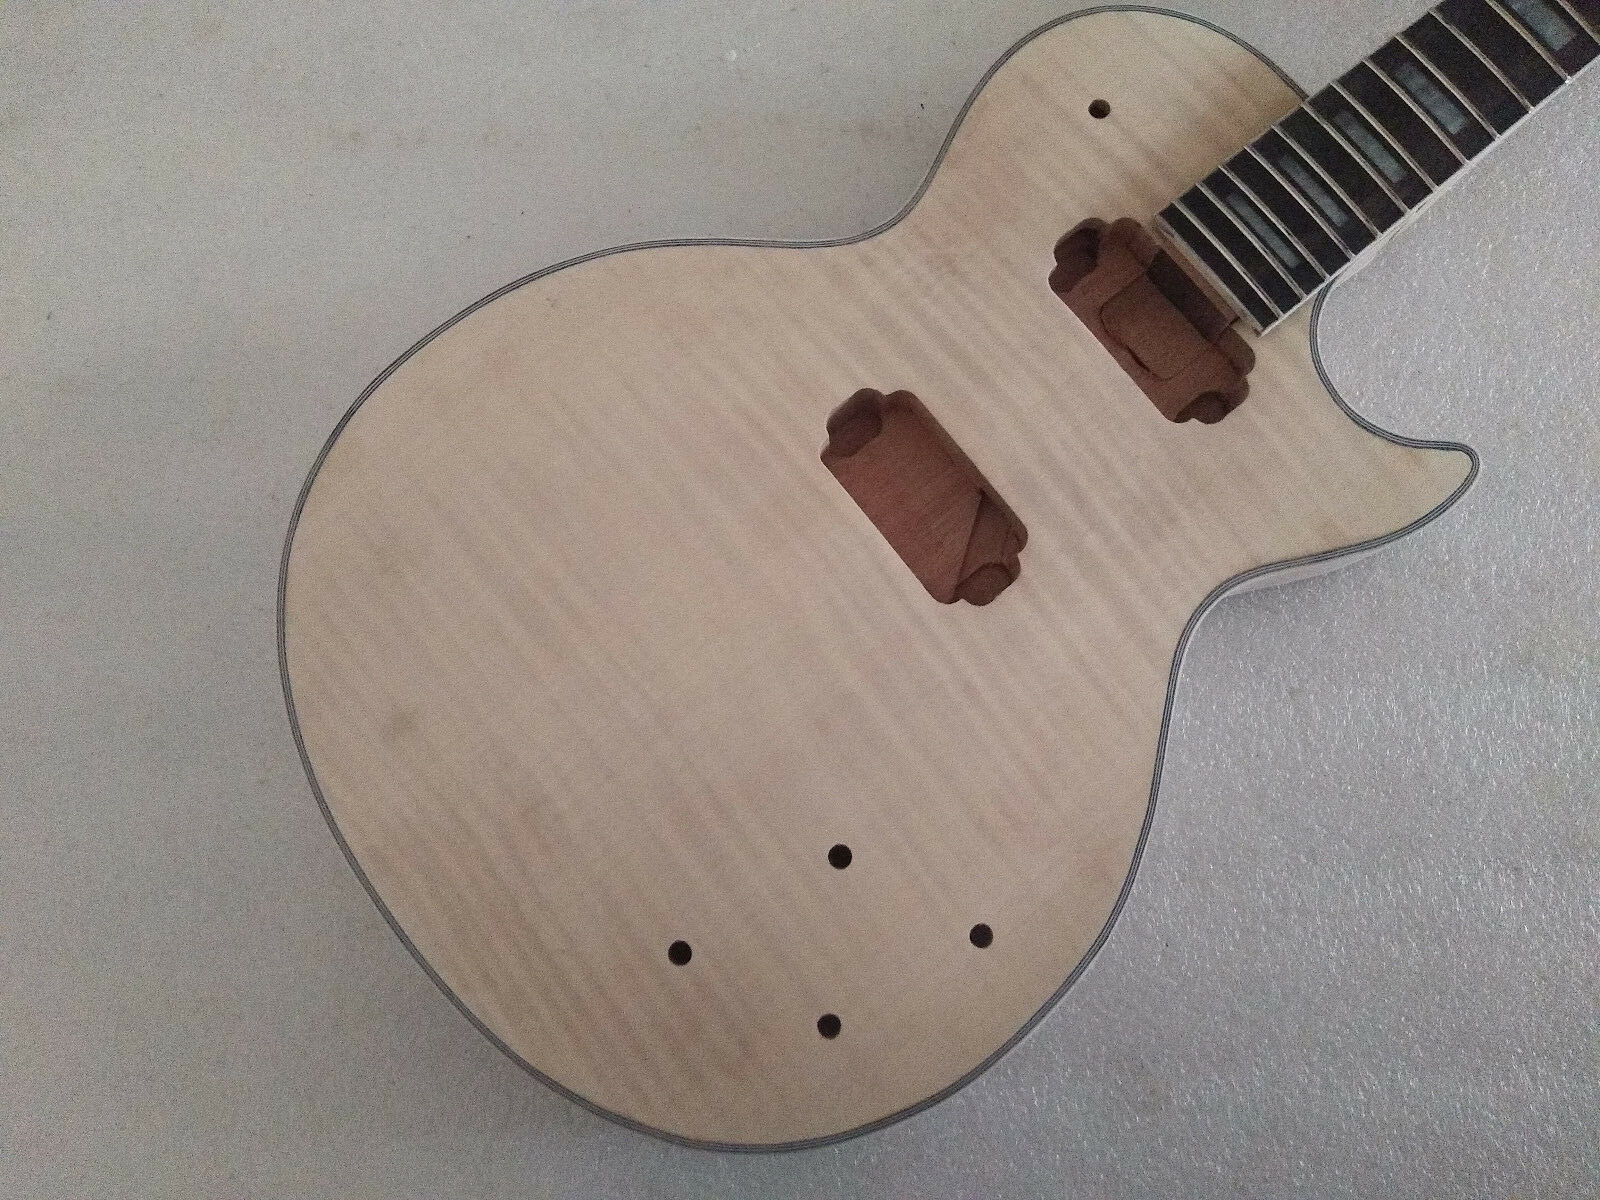 1 Set Unfinished Guitar Neck And Body For LP Style Guitar Kit